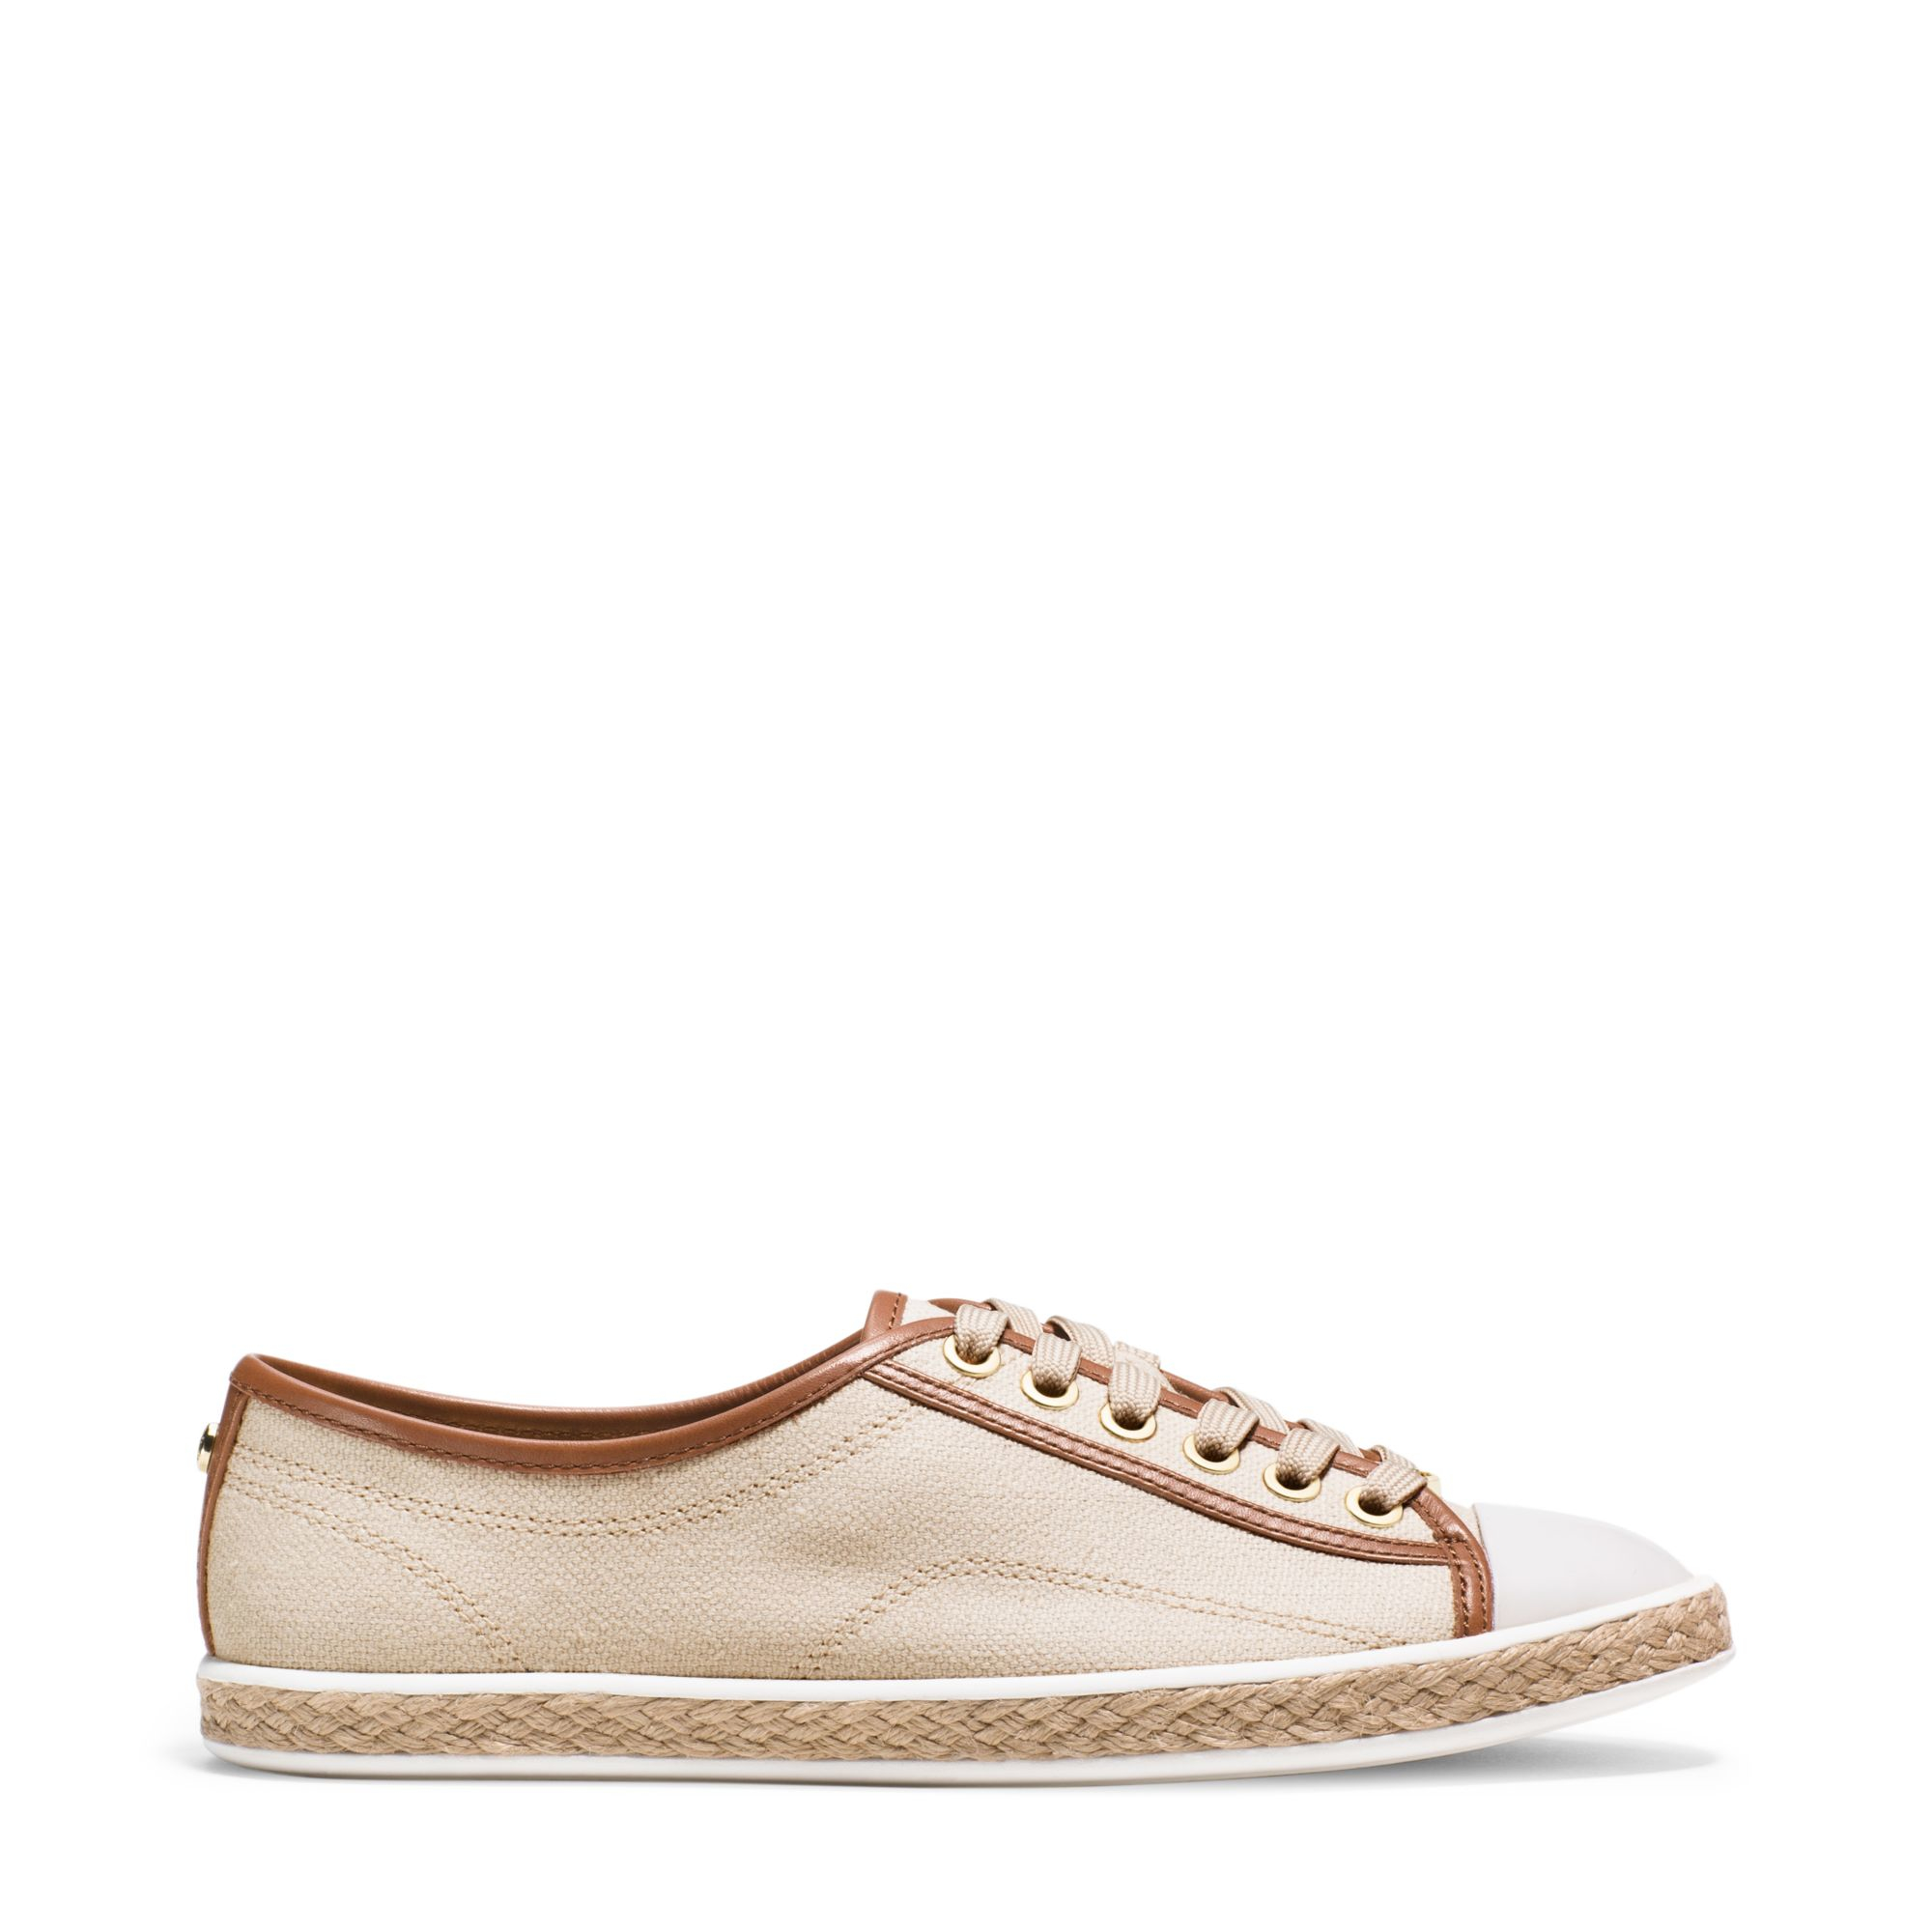 a87a3fcf83e3 Lyst - Michael Kors Kristy Canvas And Leather Sneaker in Natural